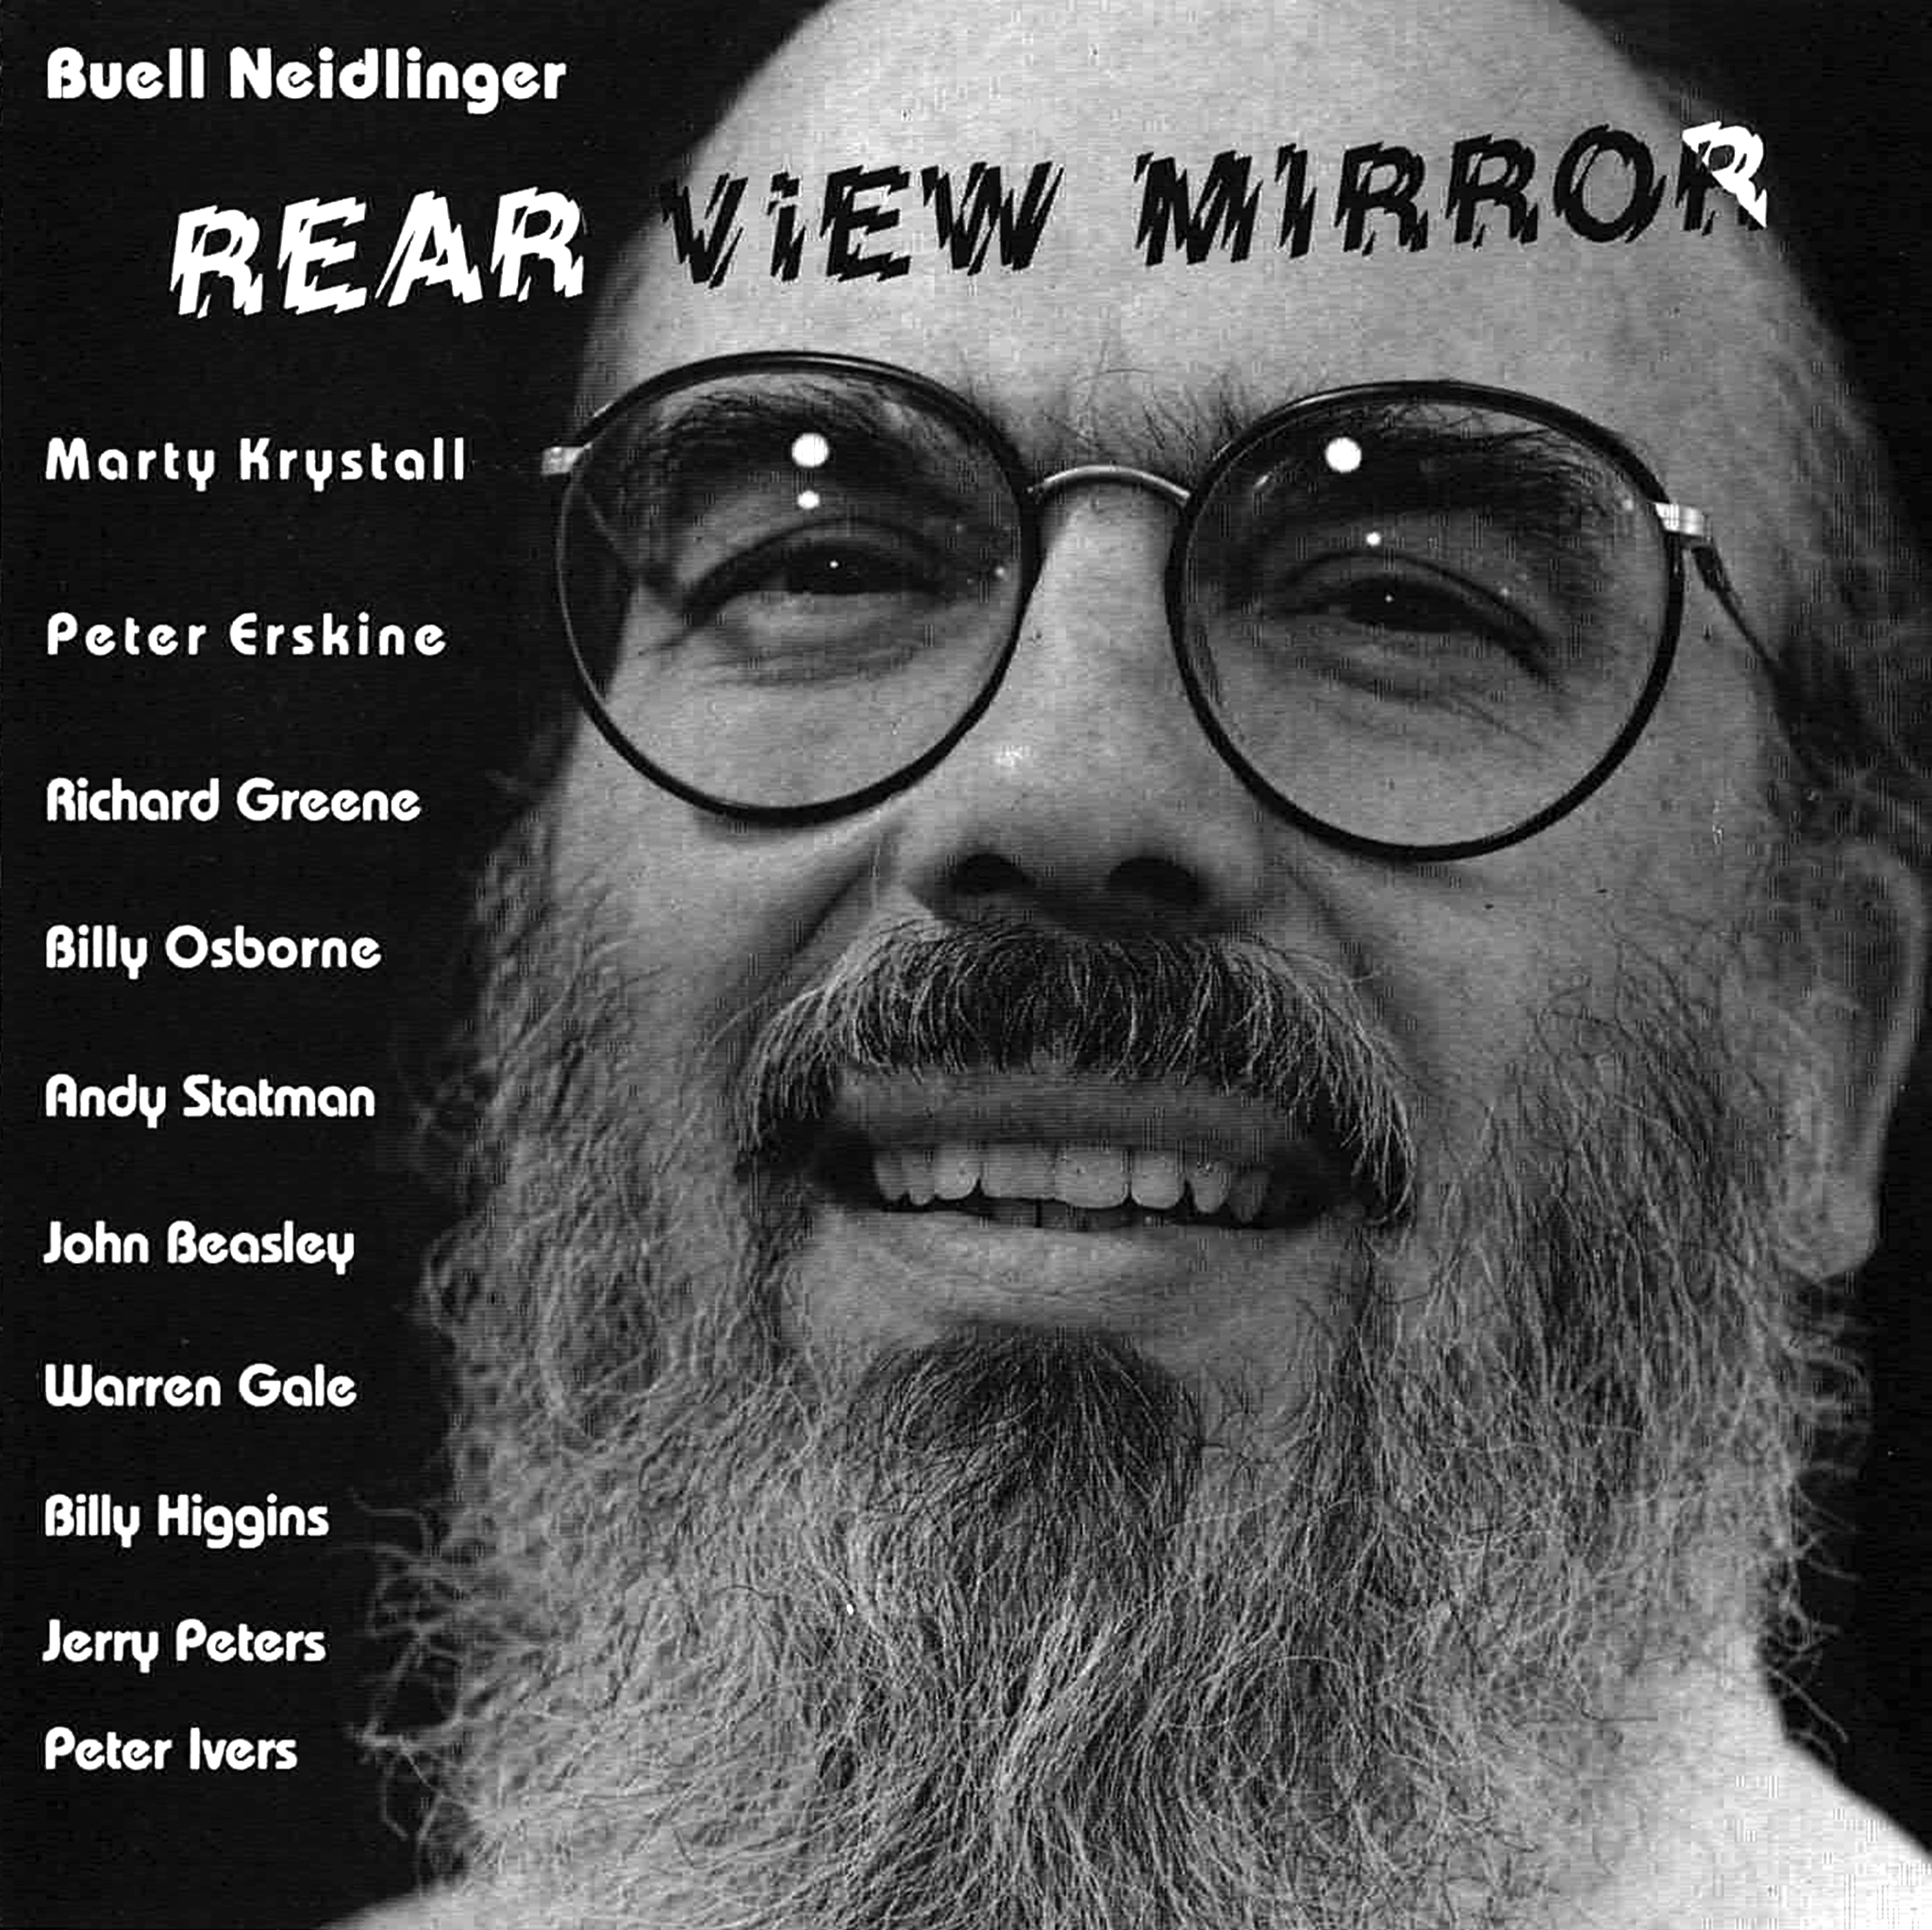 Buell Neidlinger - Rear View Mirror (48-16 FLAC)